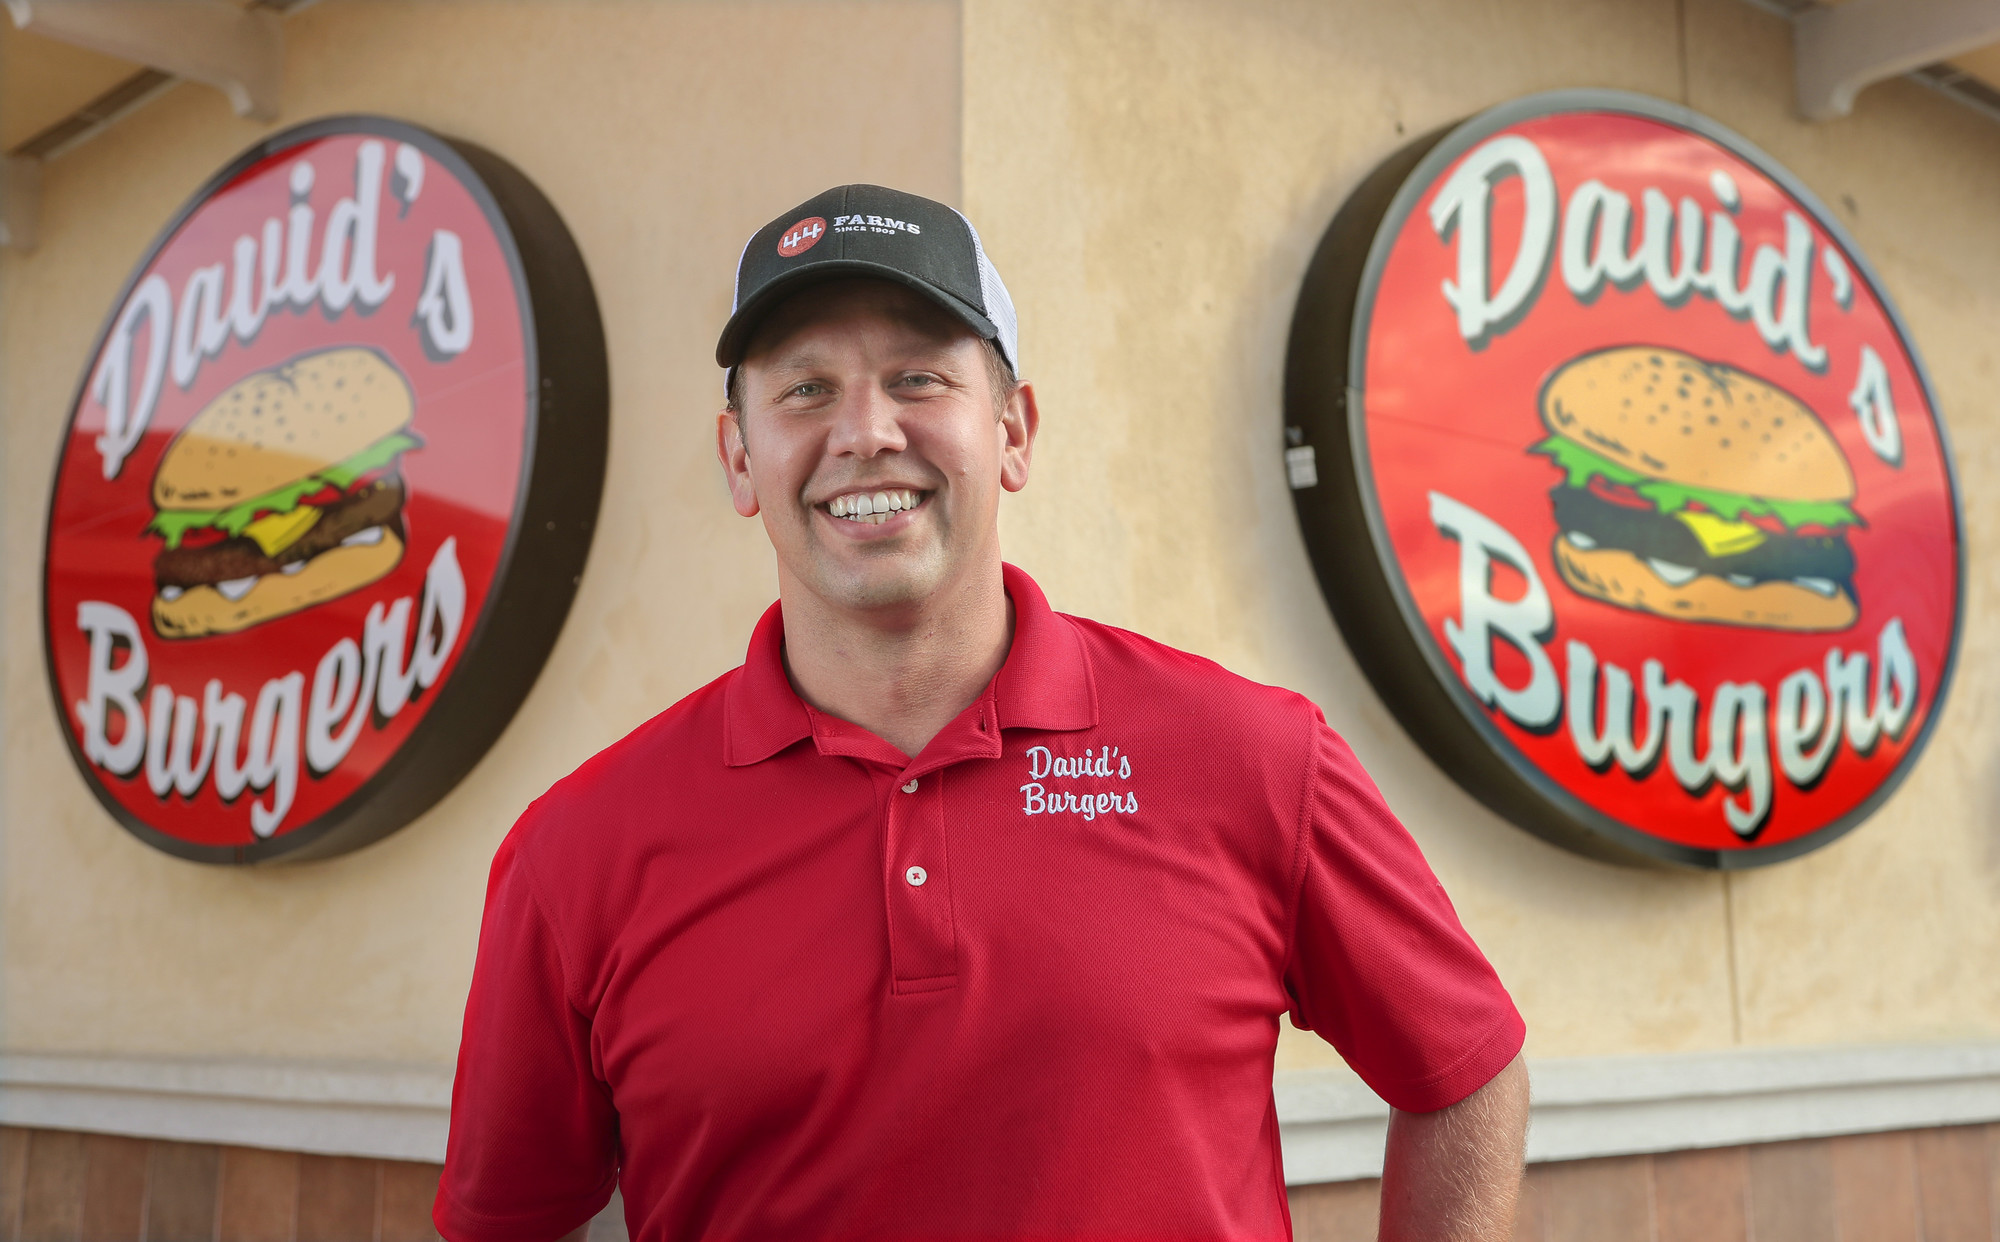 Bowen Law School graduate David Alan Bubbus created the successful hamburger restaurant chain David's Burgers. Photo by Benjamin Krain.